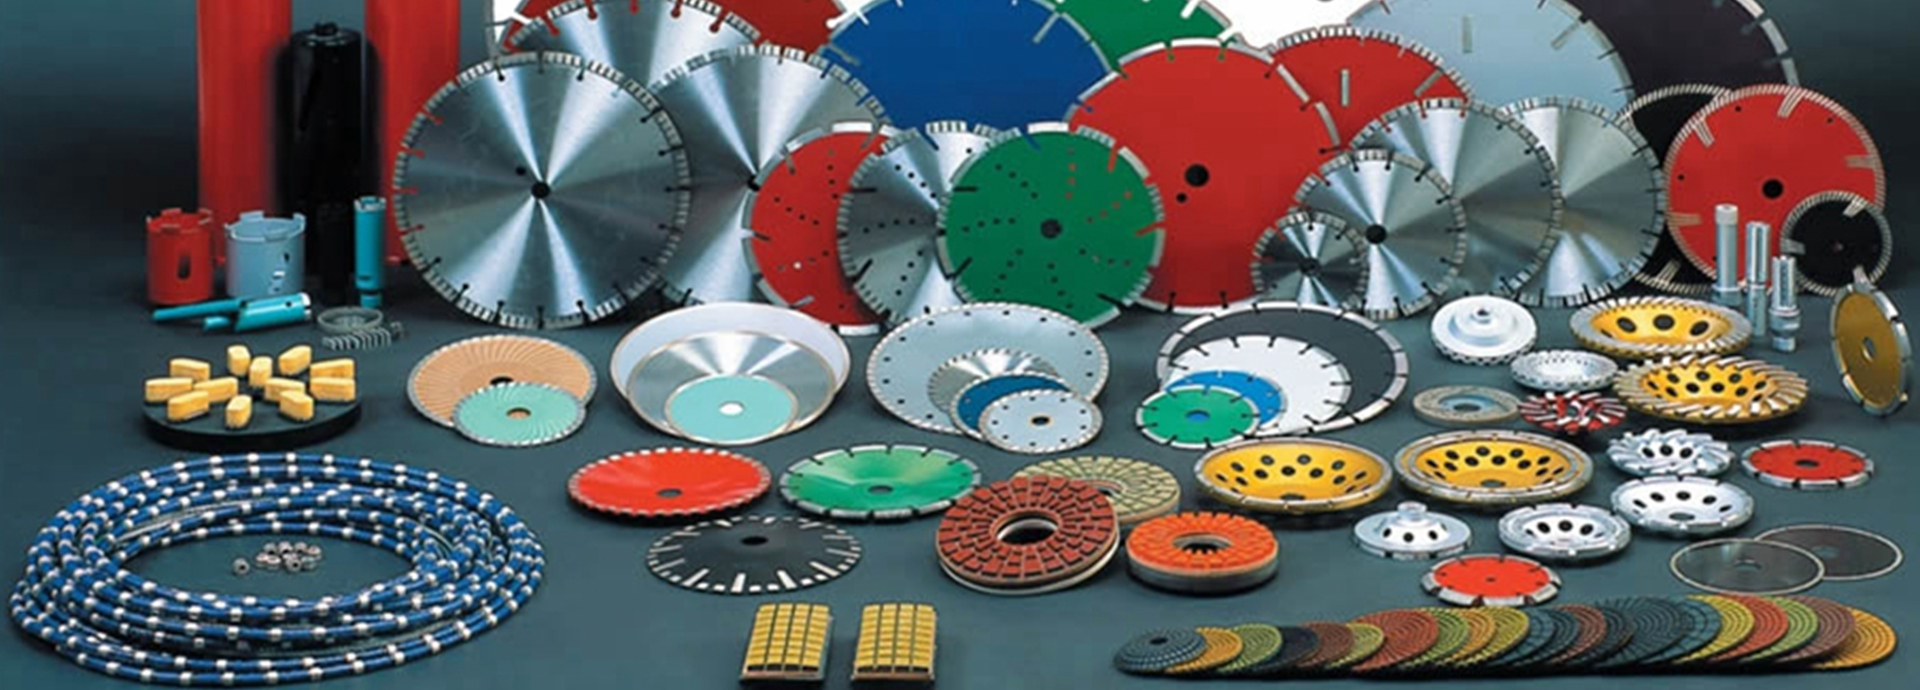 Supplier of diamond segments, blades, wire saw and grinding tools - Edgestone Diamond Tools